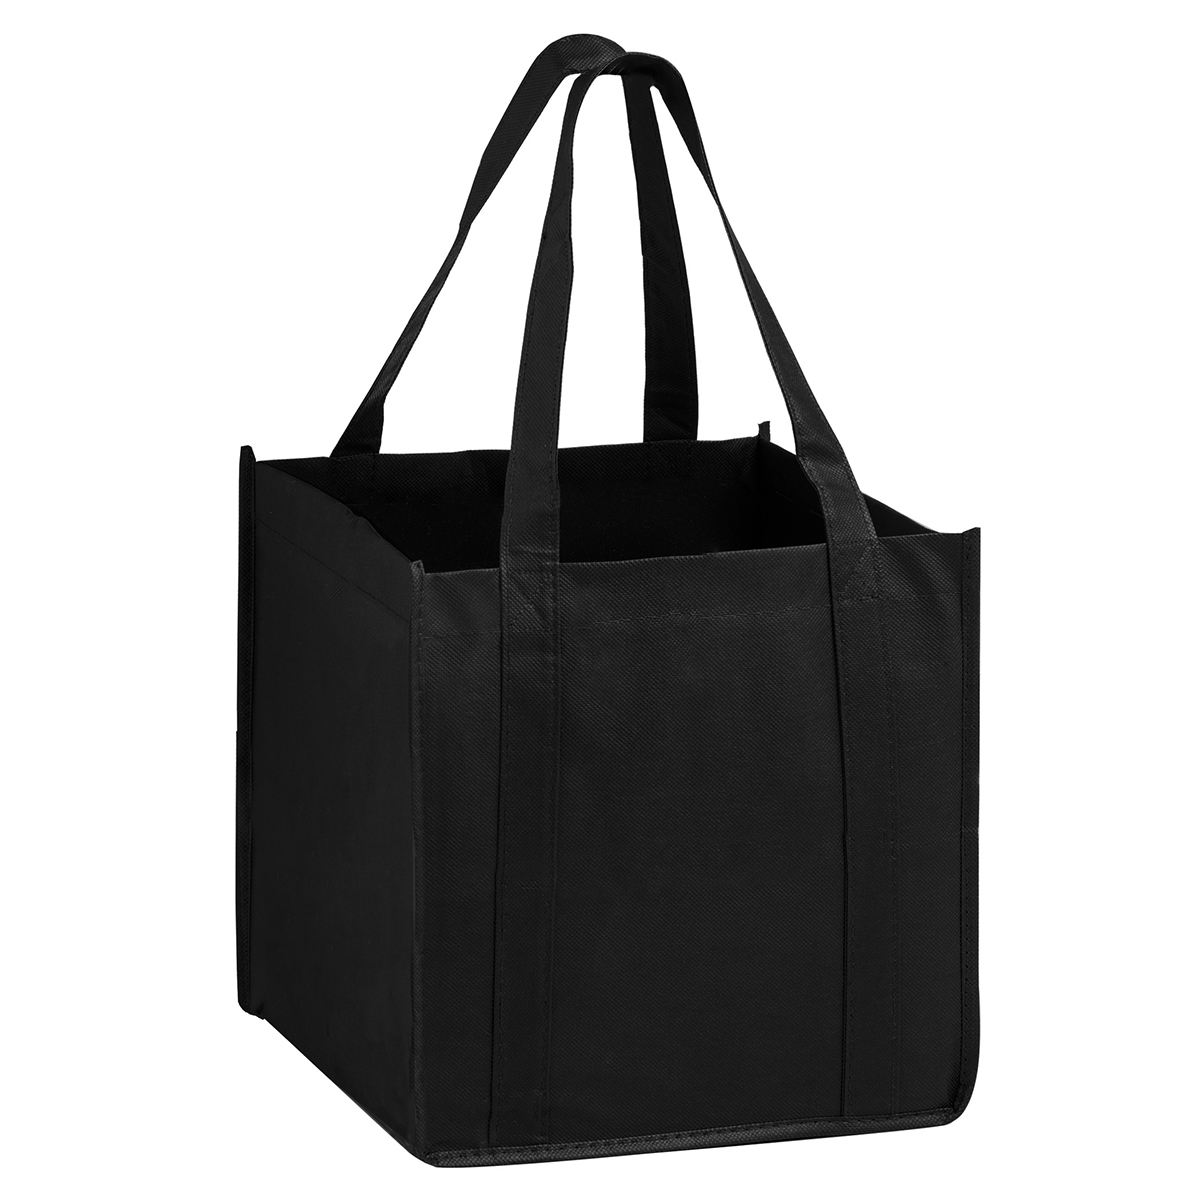 "Black The Cube Tote (10""W x 10""G x 10""H)"